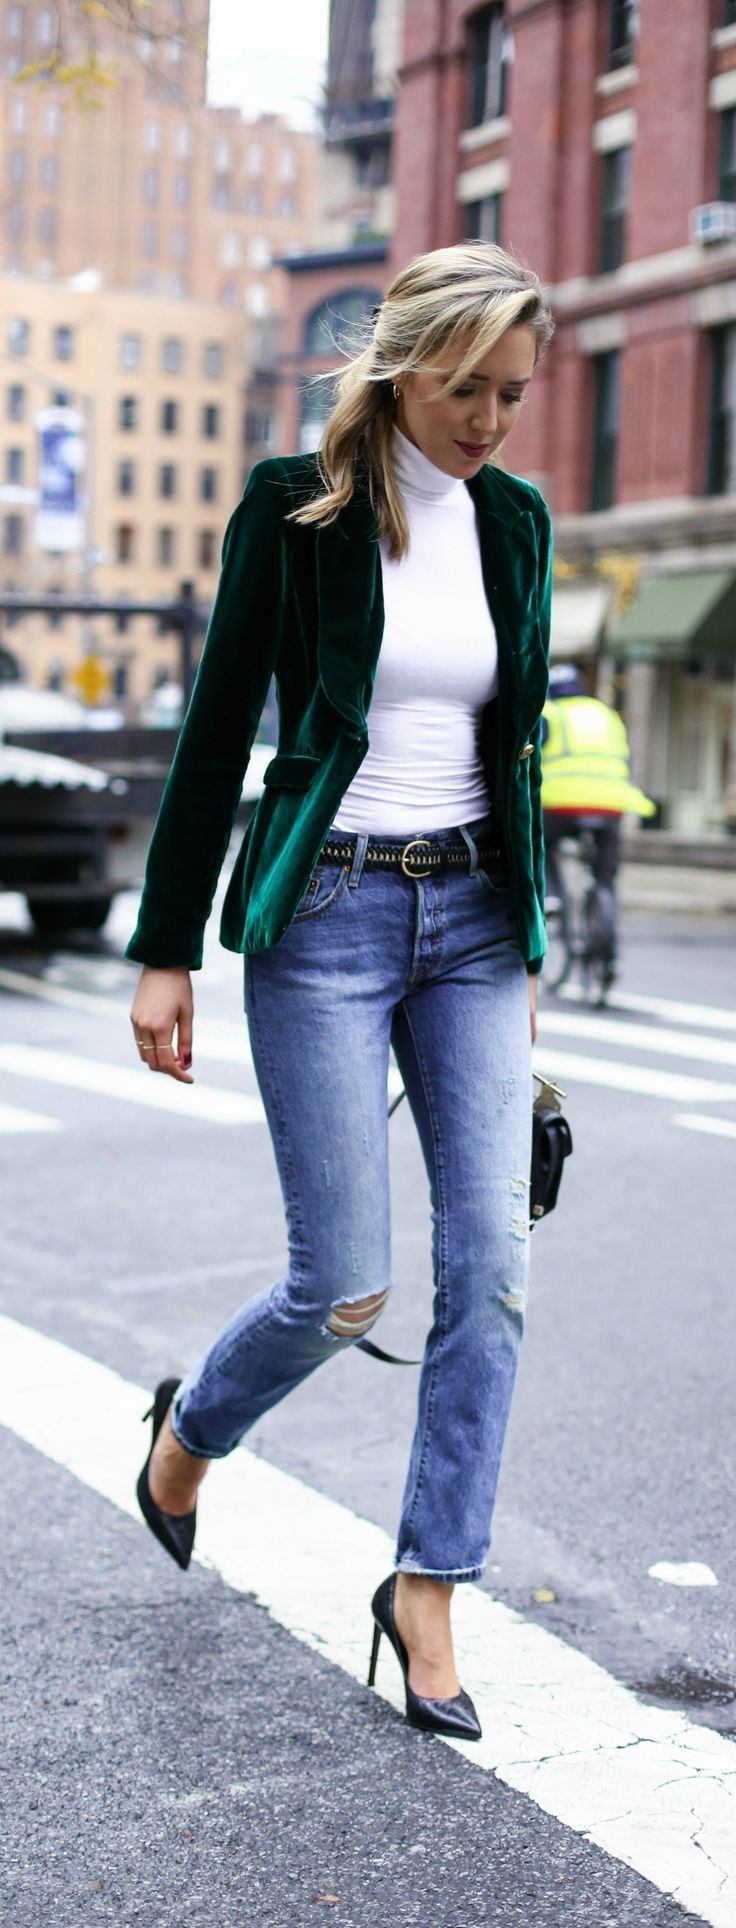 Green n gold dress  How to wear velvet outfits this fall  Mujeres Varios  Pinterest